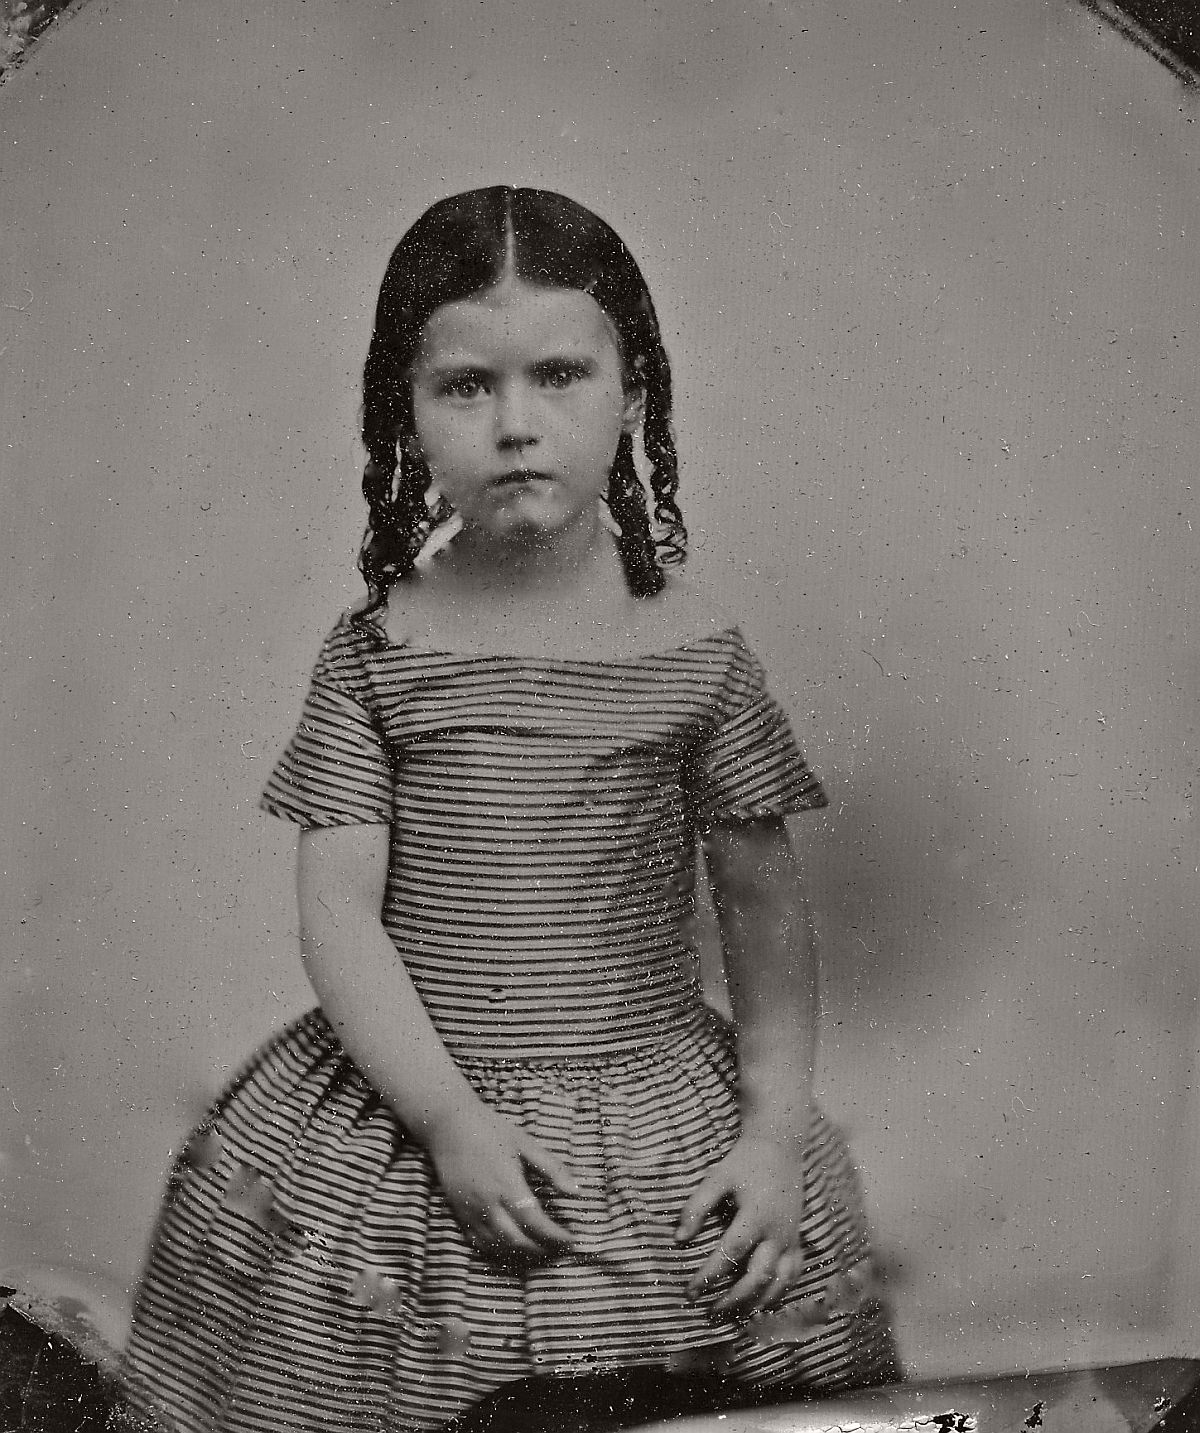 victorian-era-ambrotype-portraits-of-children-1850s-and-1860s-11